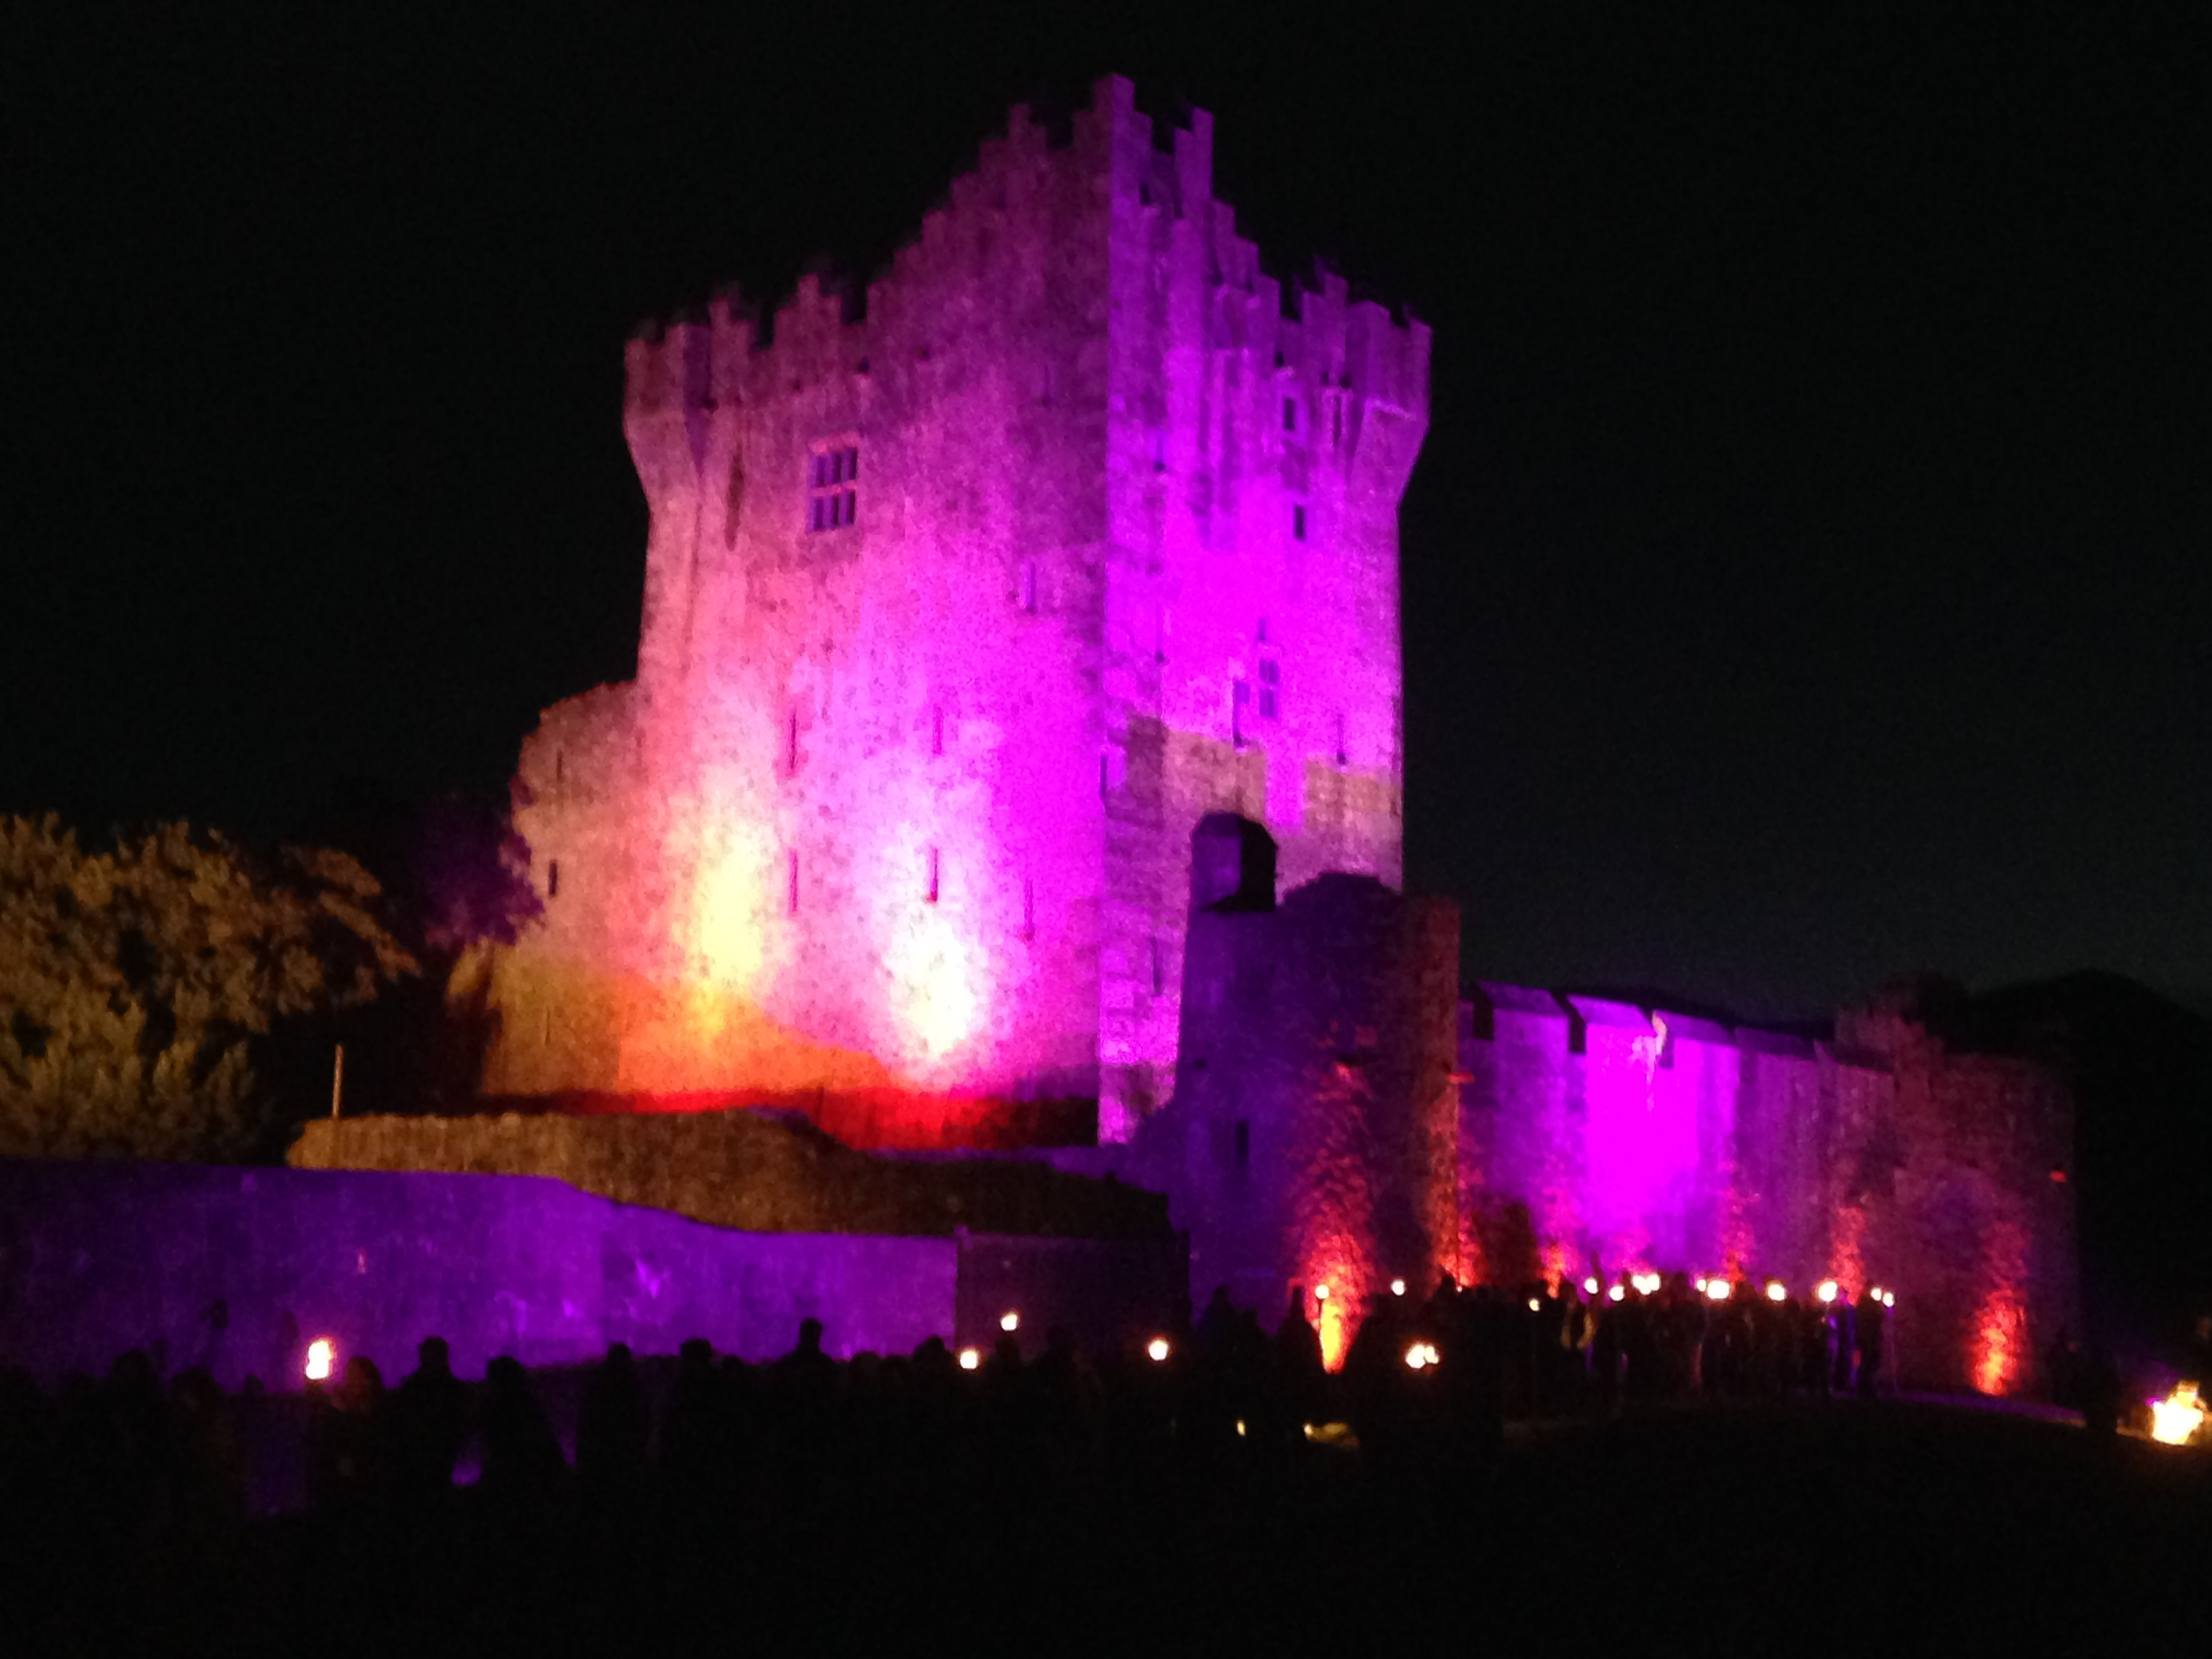 killarney mature women dating site Ladies view ladies view is about 12 miles from killarney on the n71 road as you go towards kenmare the view here is probably the best known of killarney and is a major attraction for visitors.